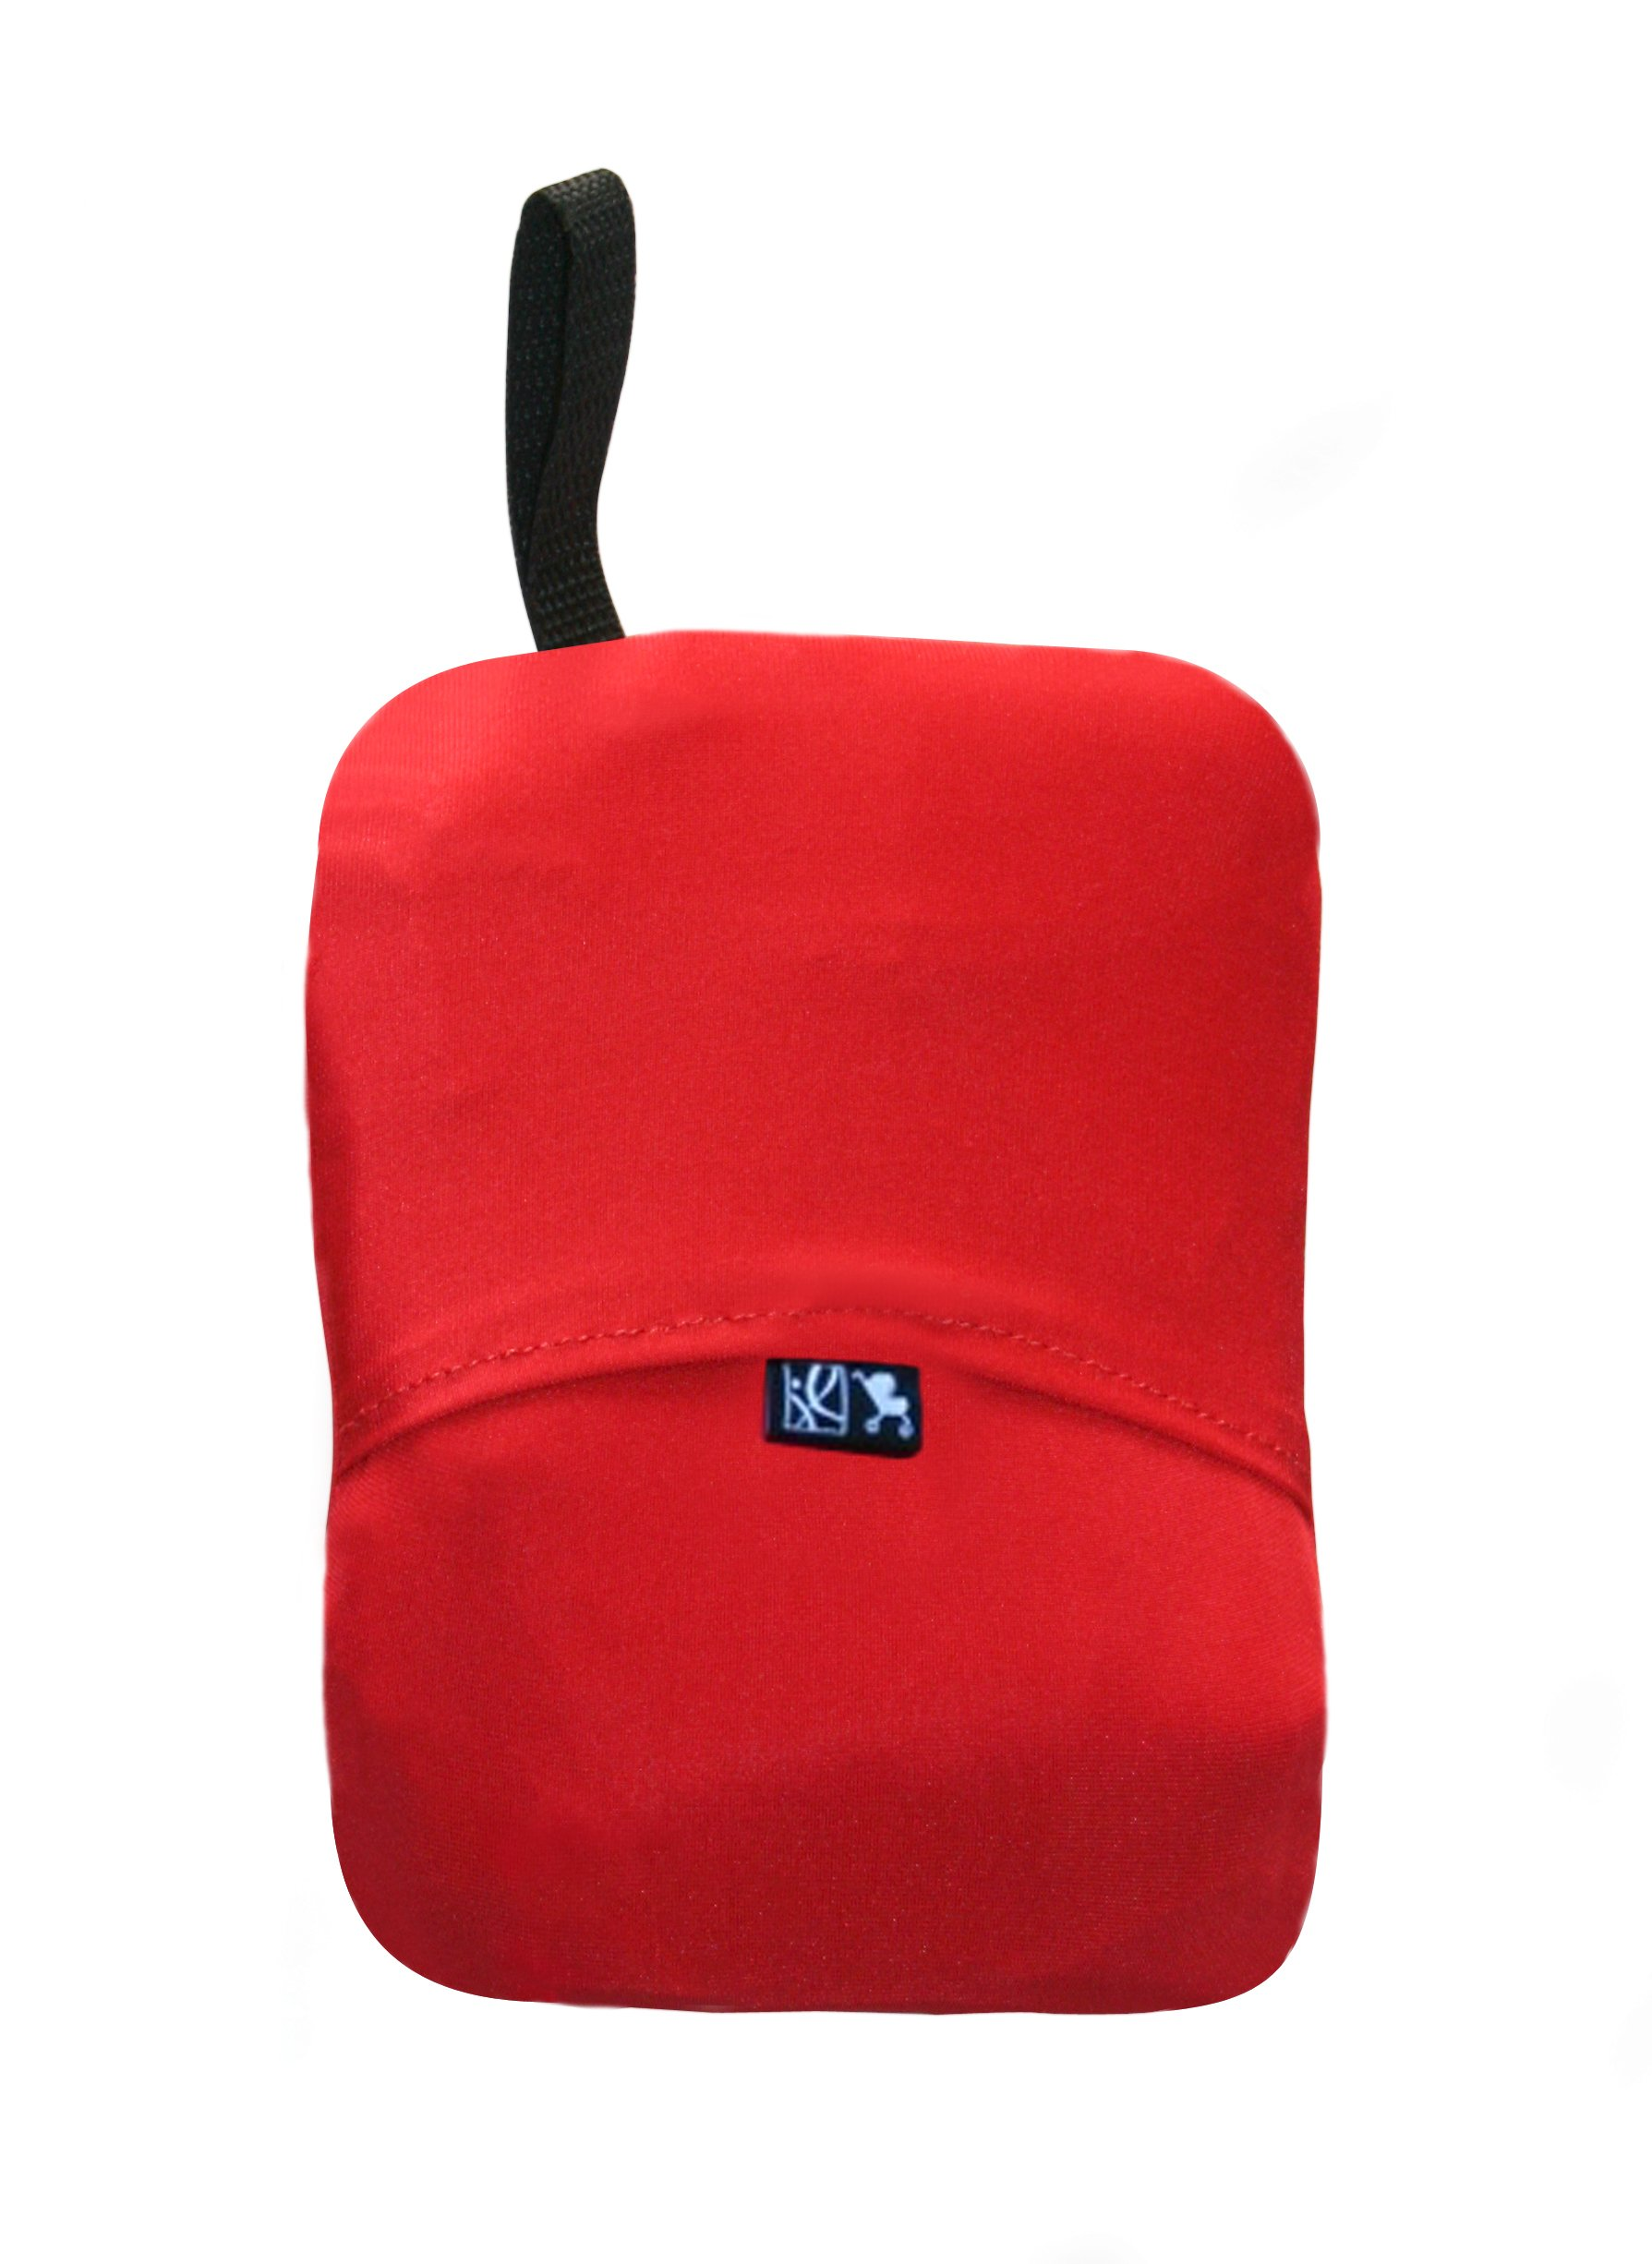 JL Childress Gate Check Bag for Umbrella Strollers, Red by J.L. Childress (Image #3)